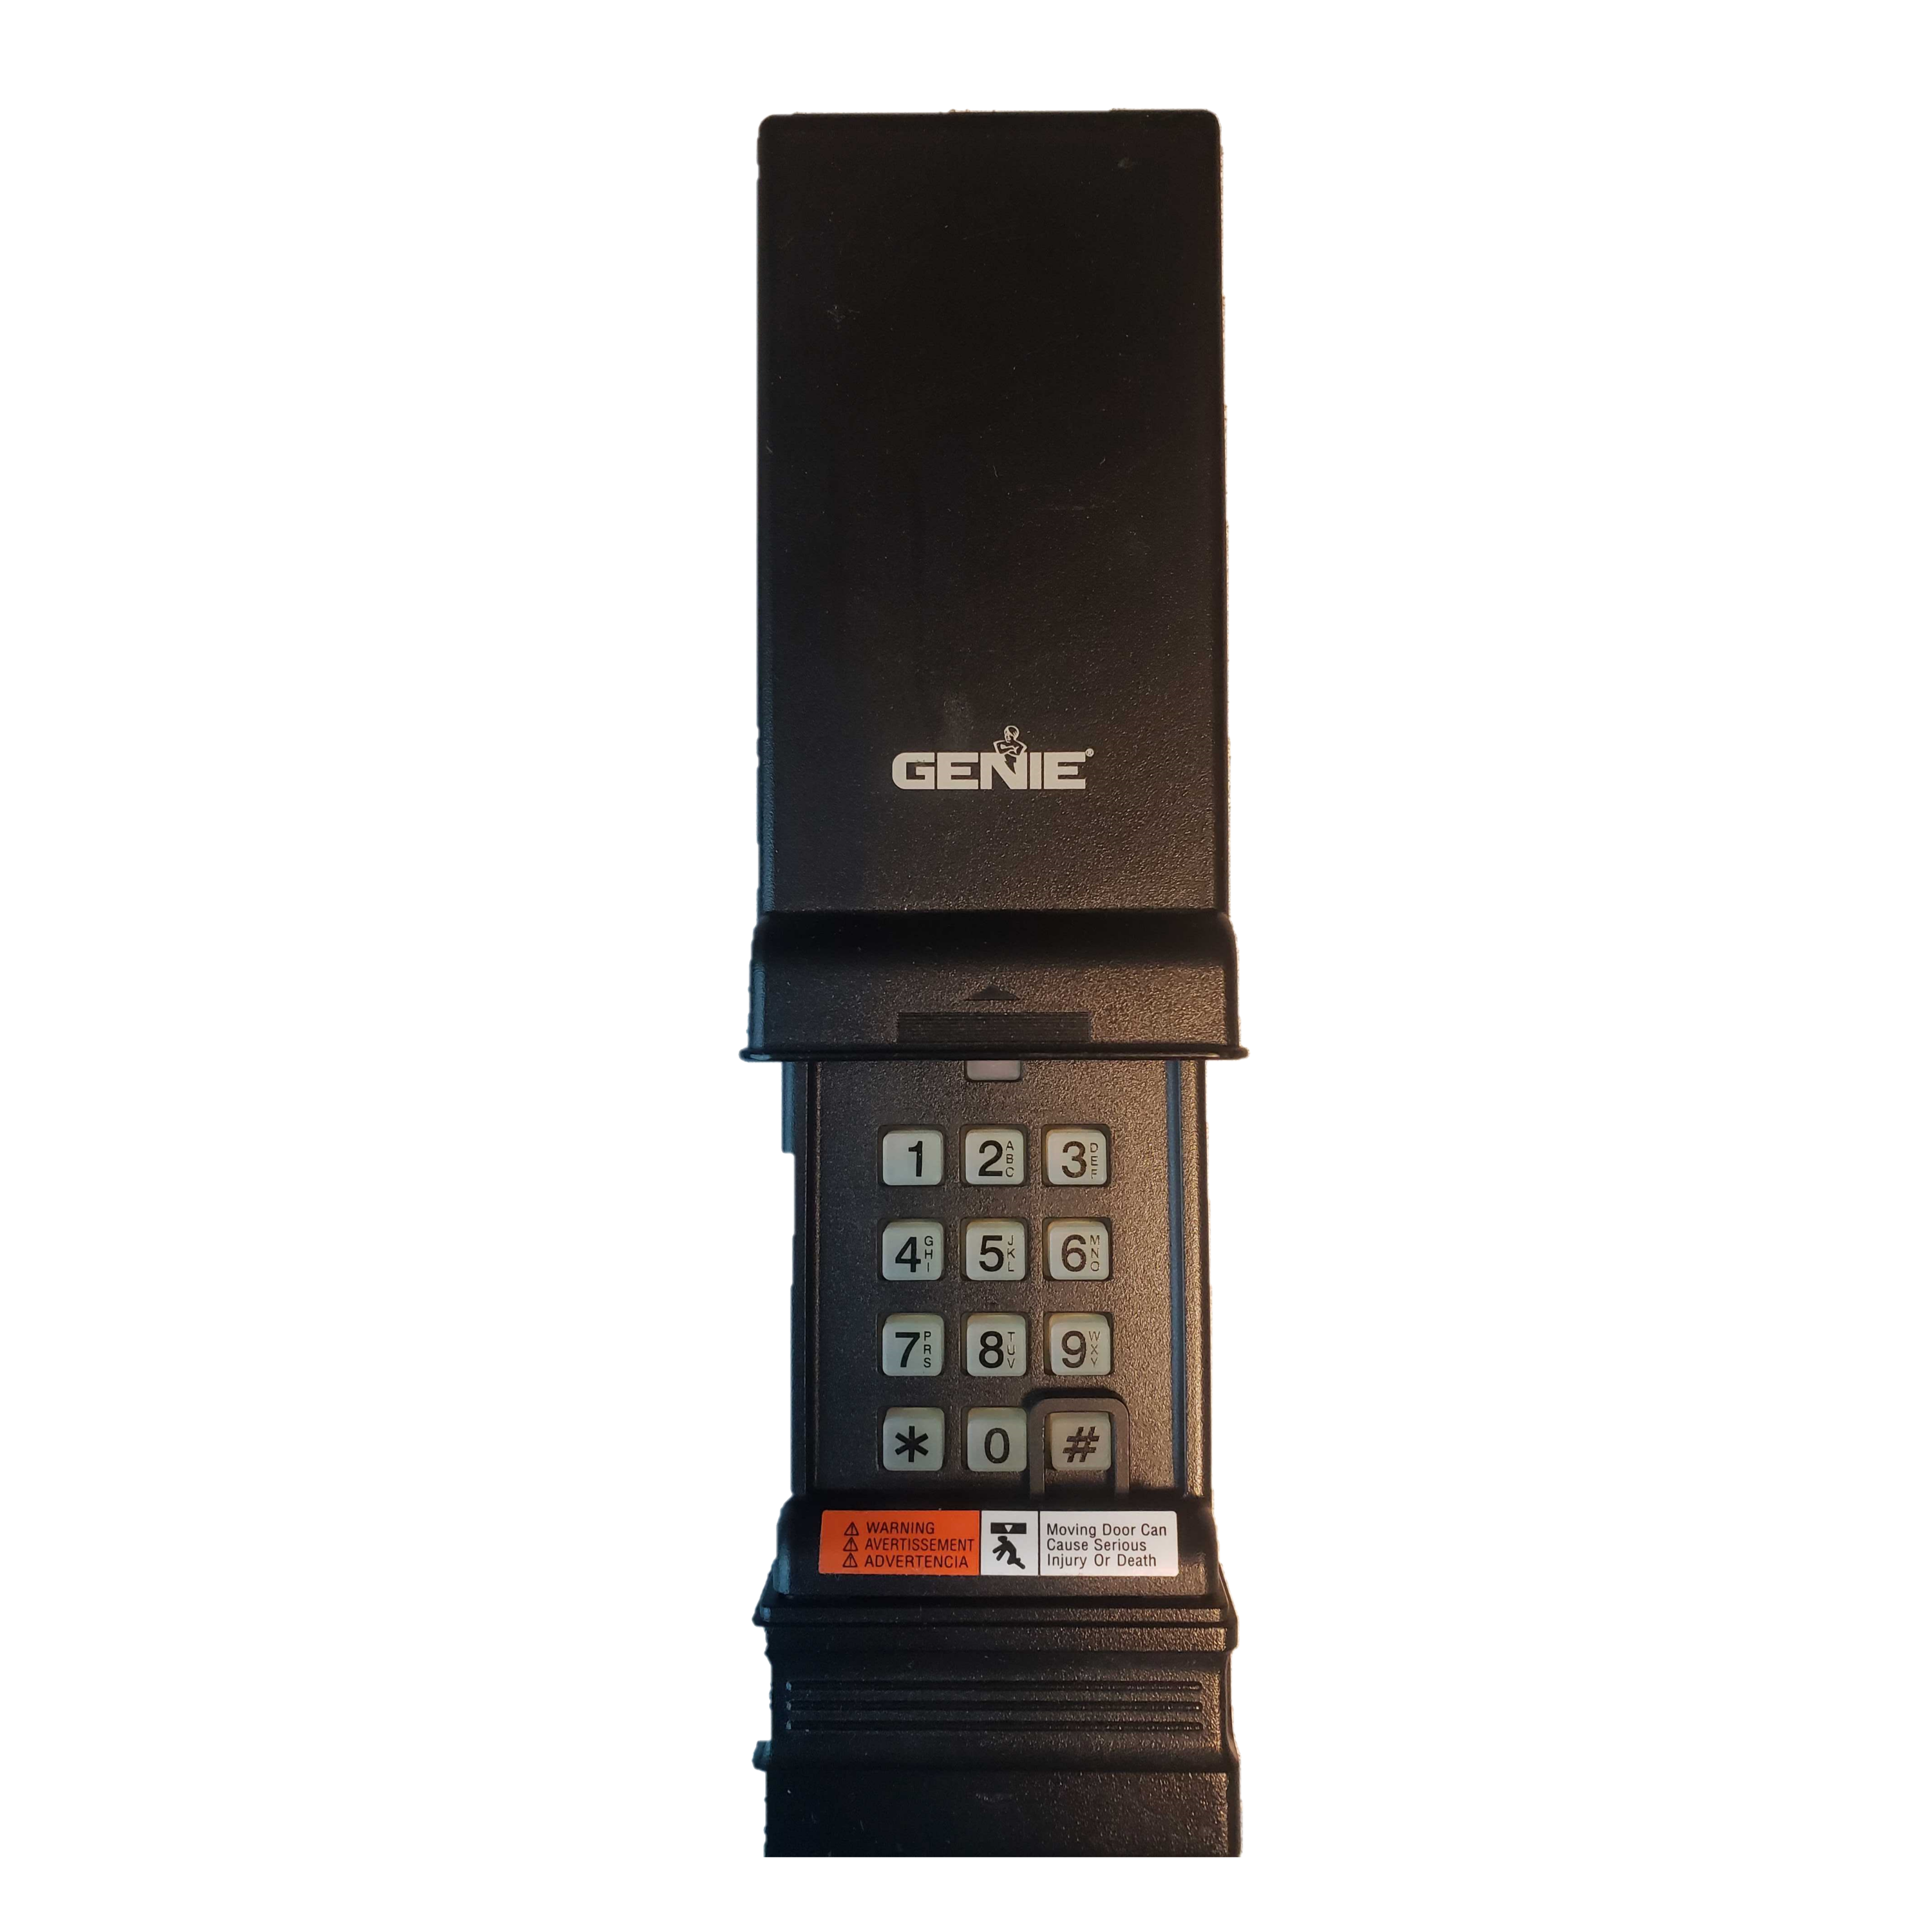 Genie Garage Door Programming Accessories Keypads